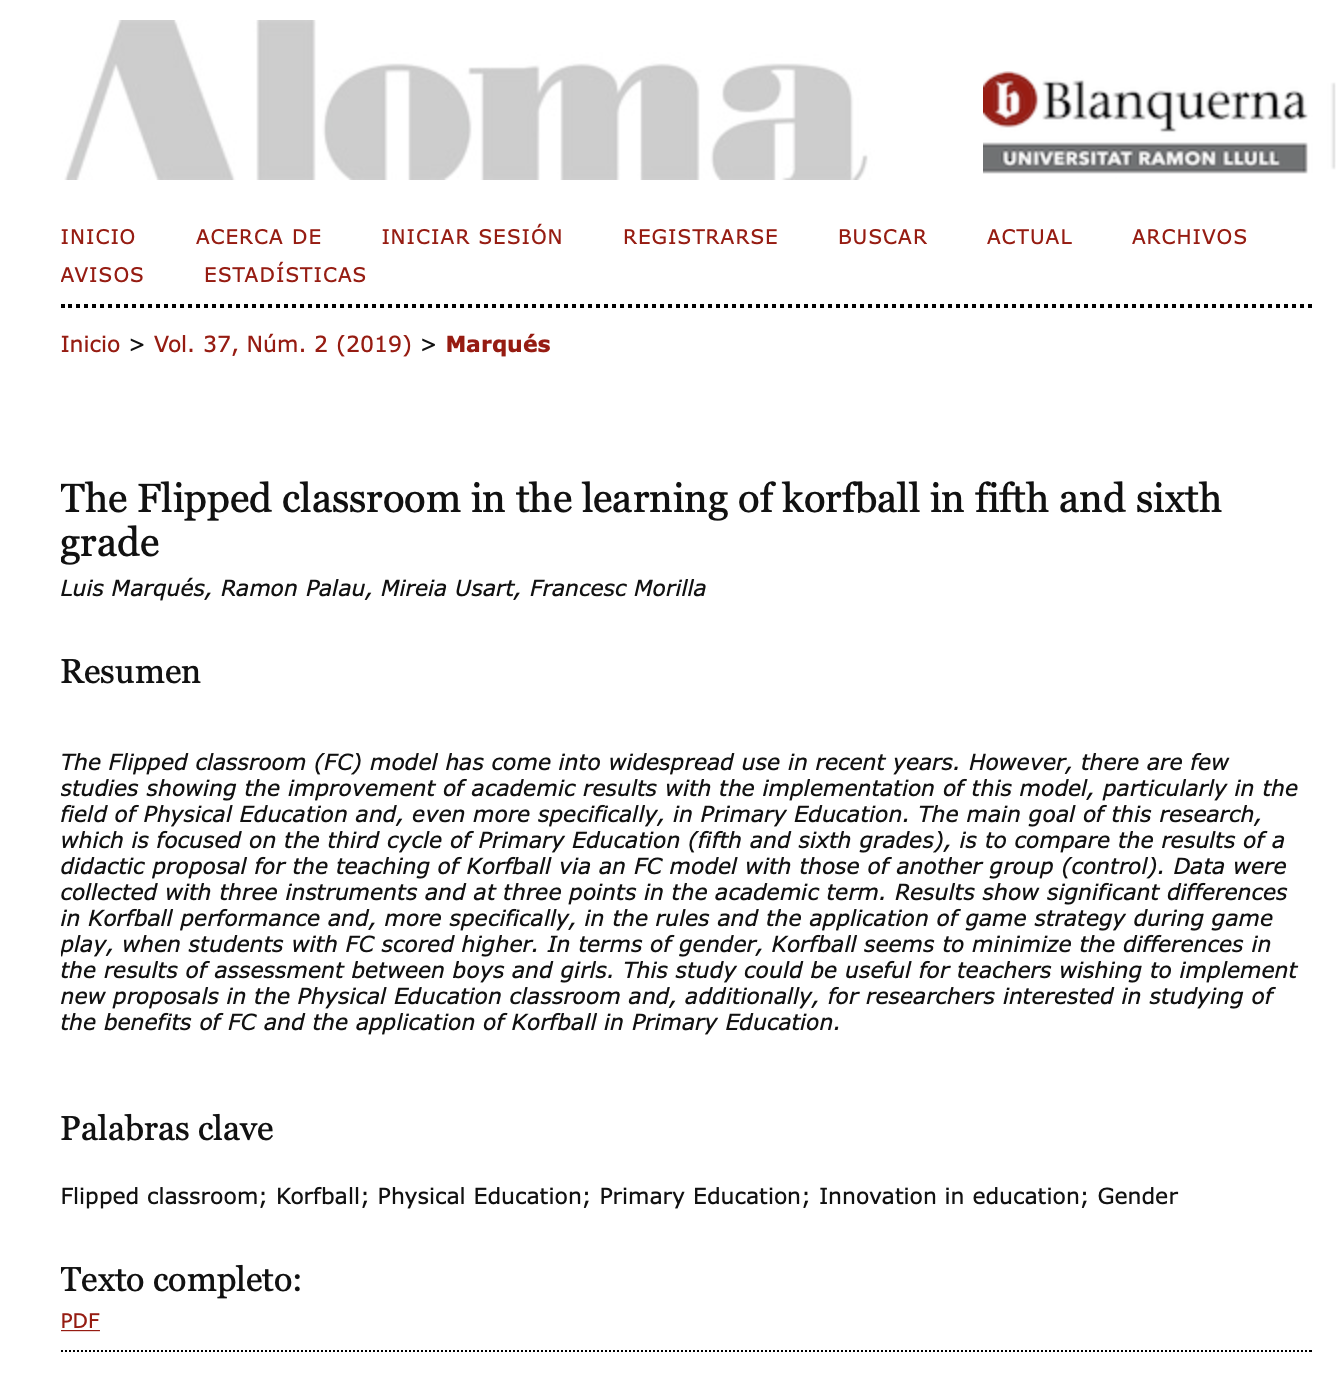 The Flipped classroom in the learning of korfball in fifth and sixth grade